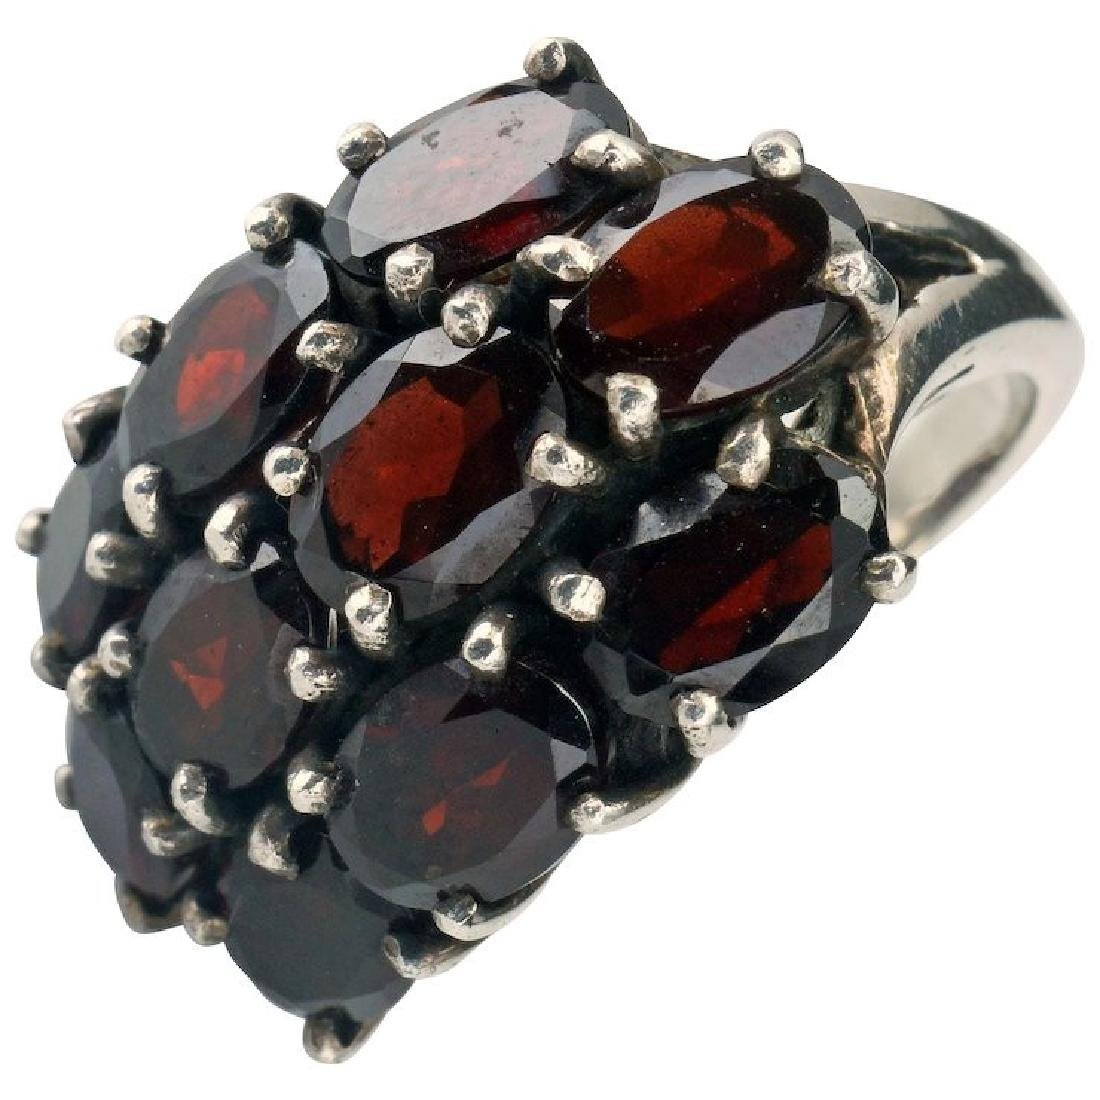 Edwardian .925 Sterling silver ring with large garnets